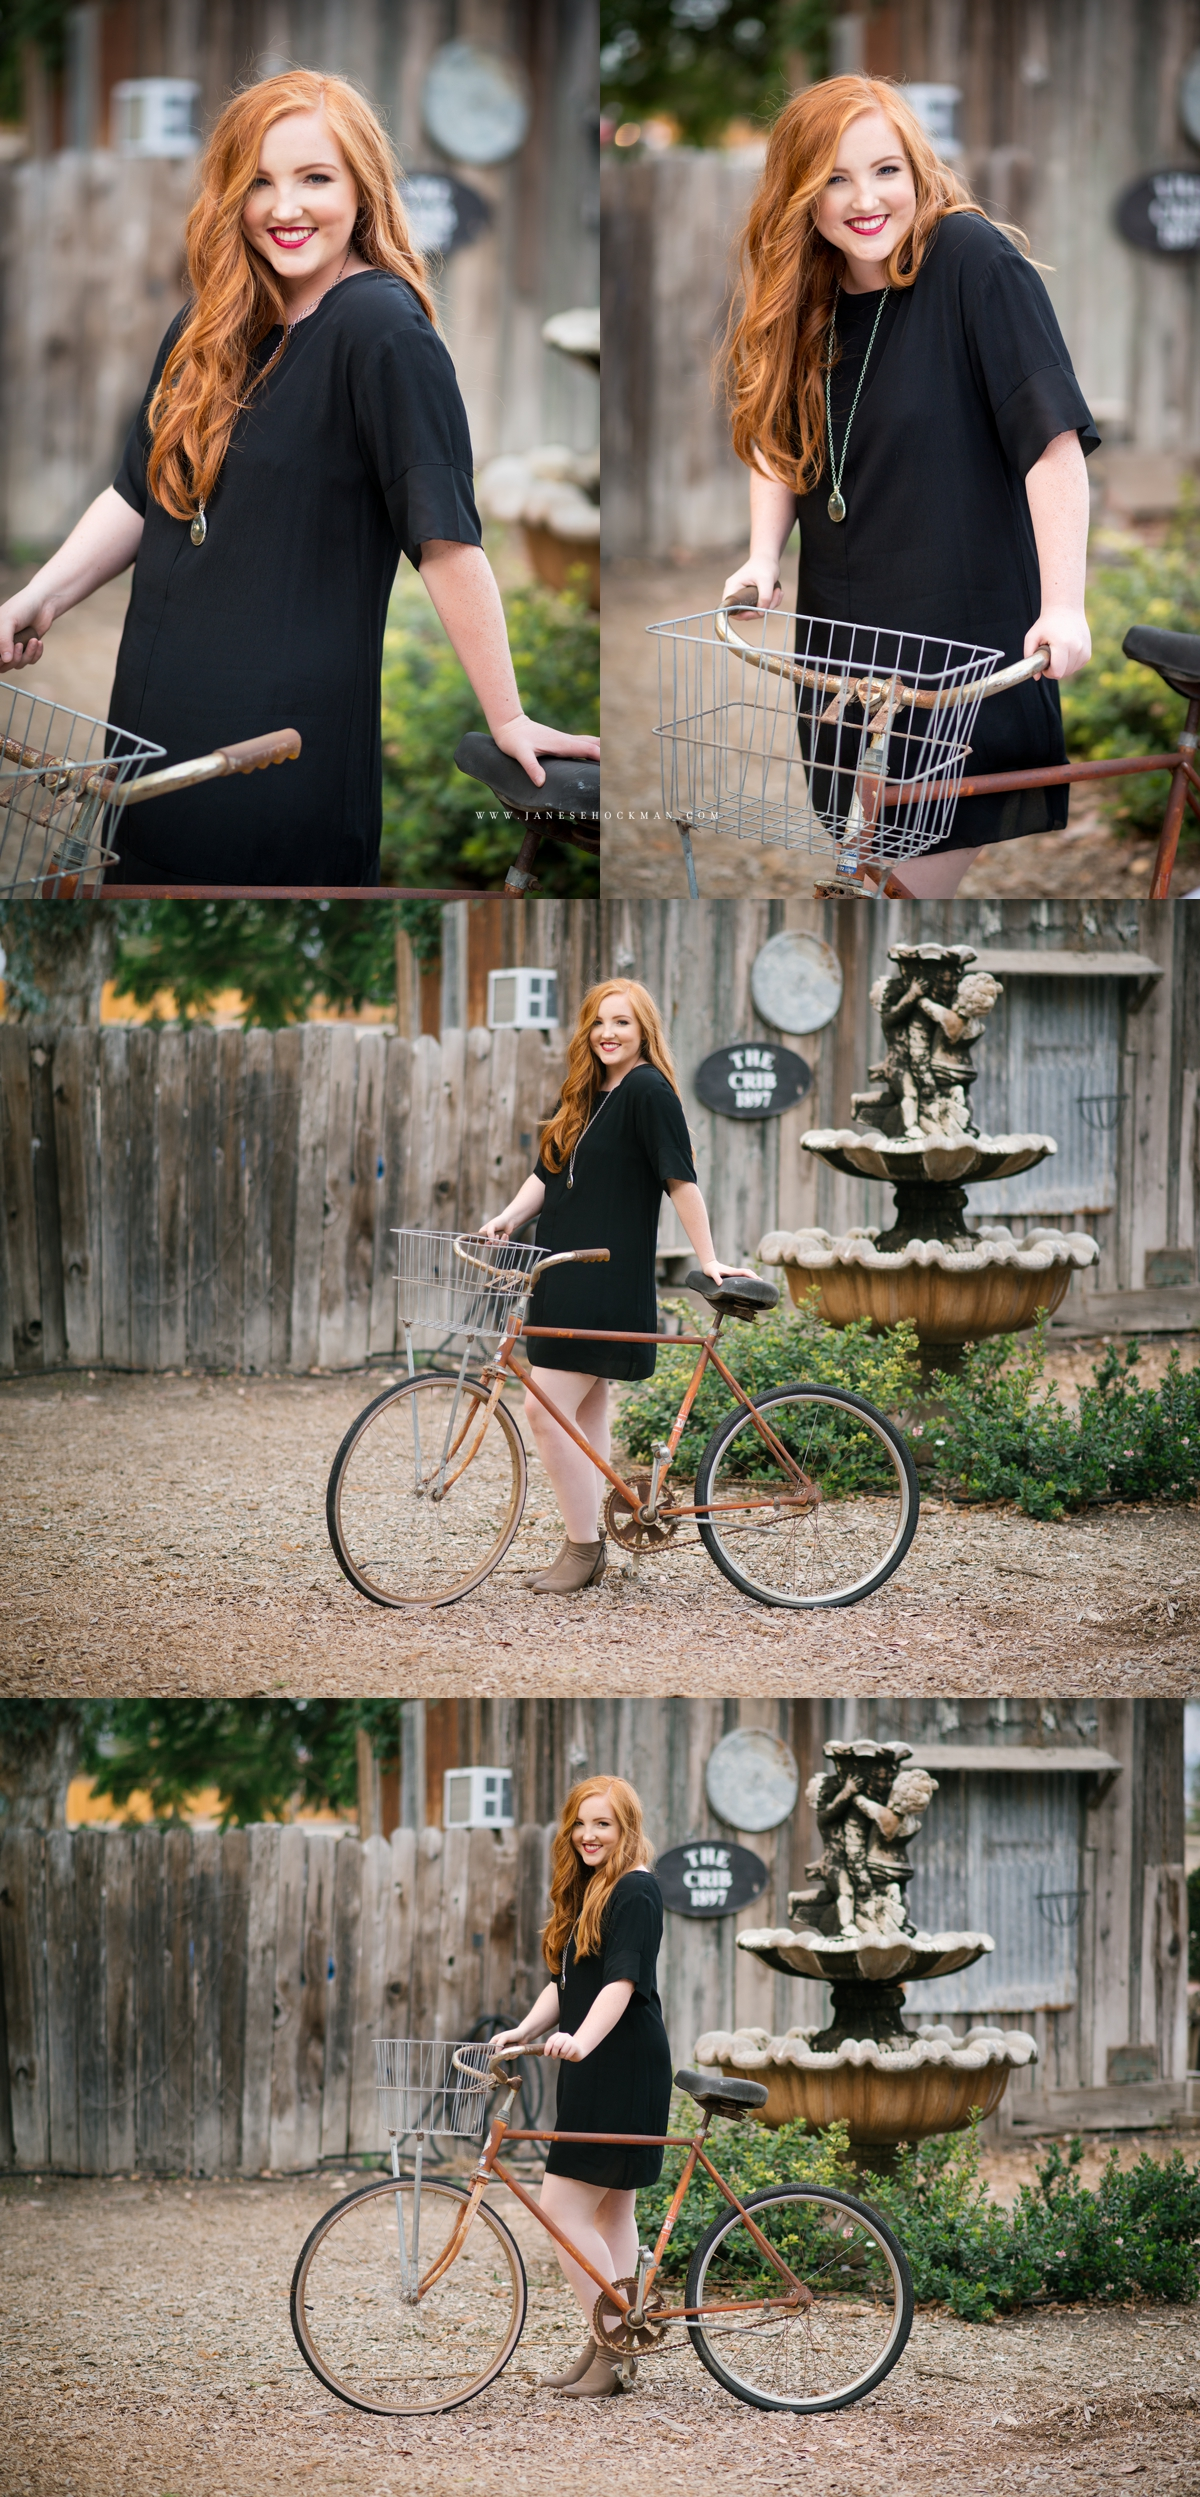 Grace-Janese Hockman Photography San Luis Obispo High School Senior Portraits 7.jpg